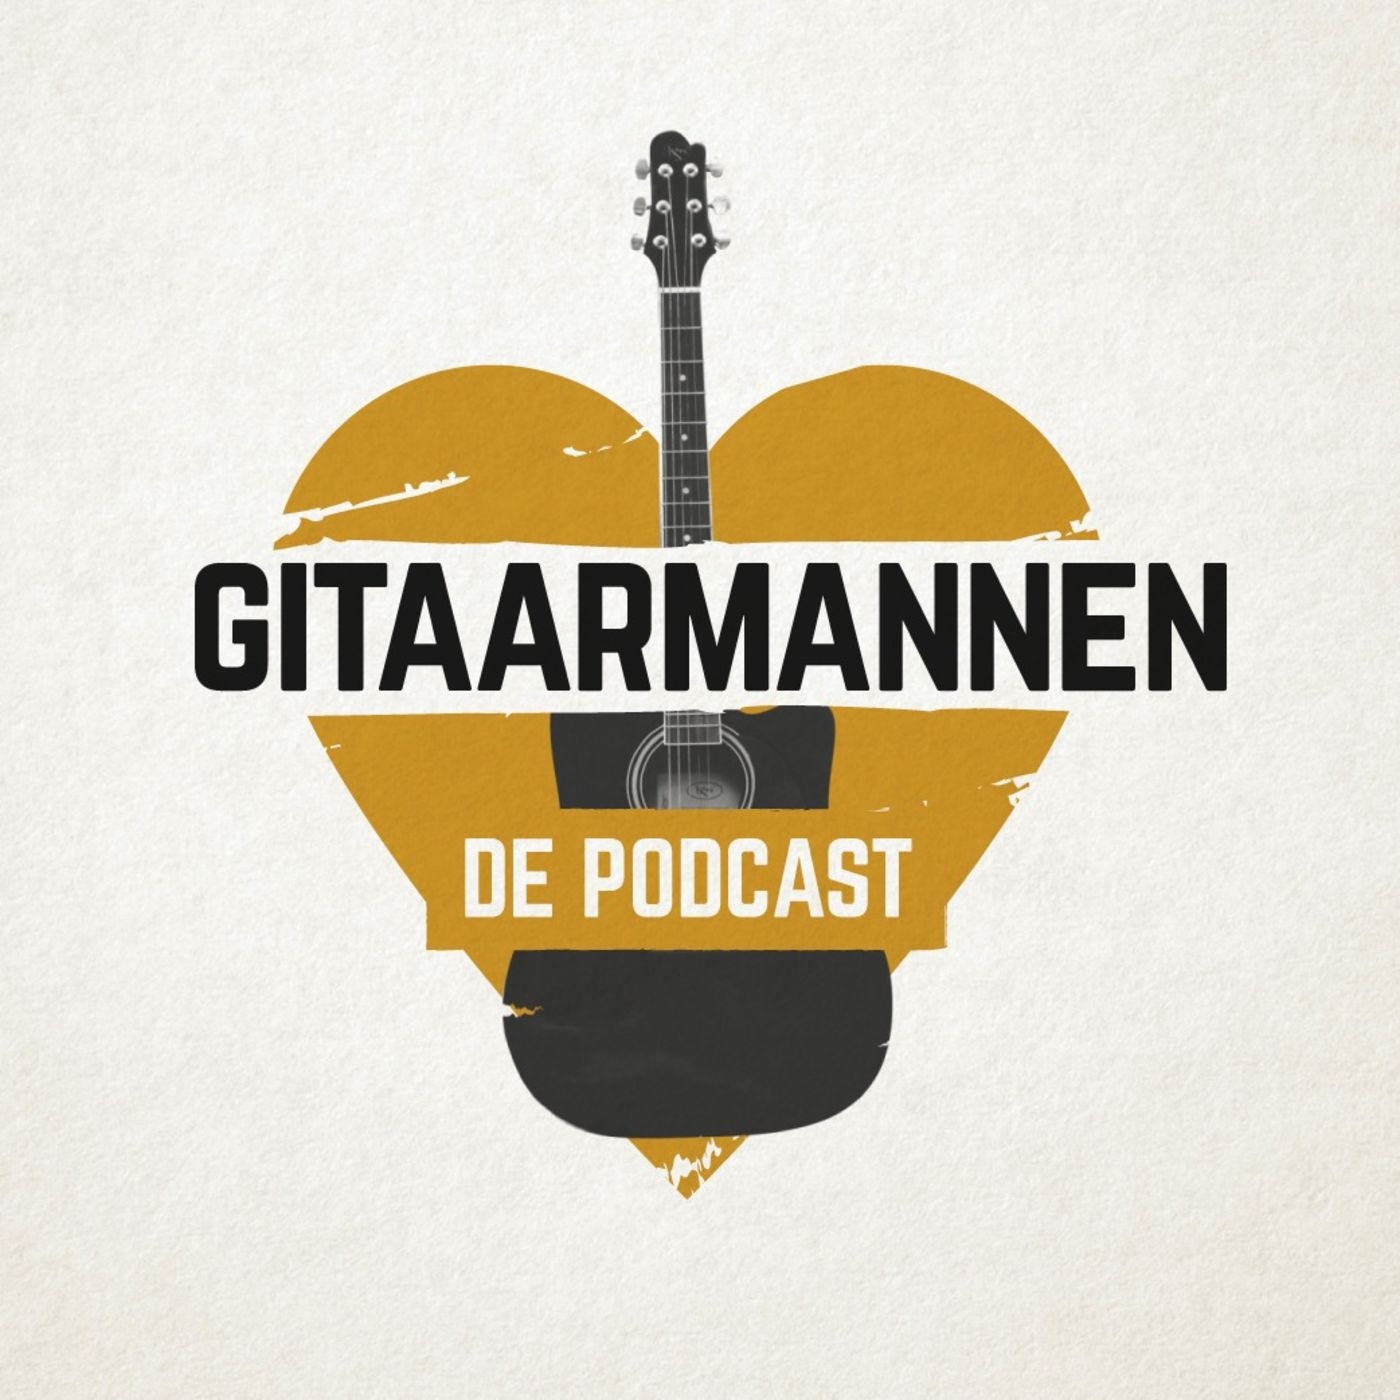 Gitaarmannen, de podcast logo